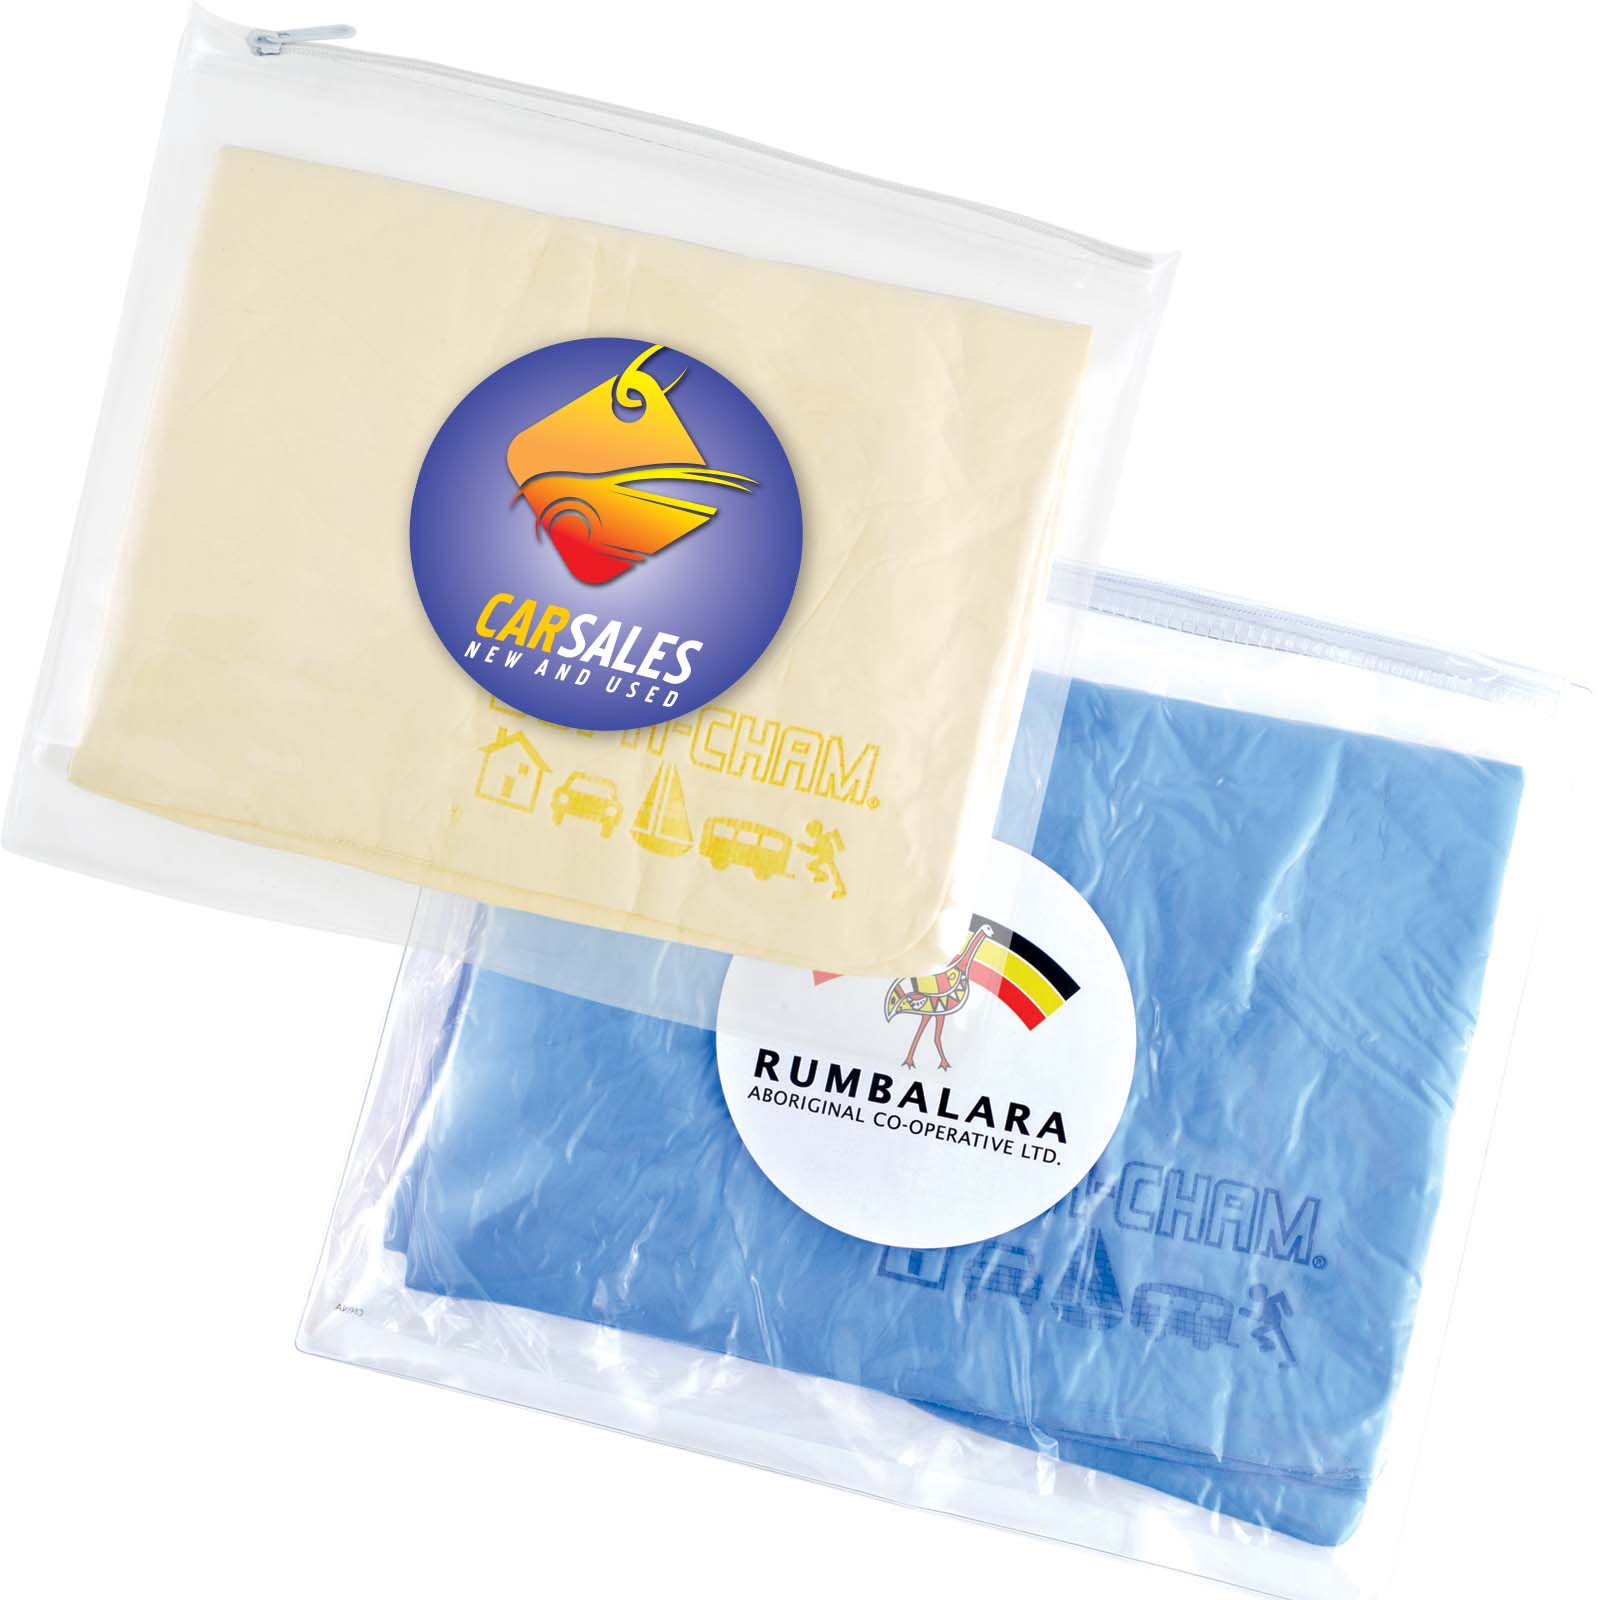 Supa Cham Chamois / Body Towel in PVC Zipper Pouch - Includes a full colour logo